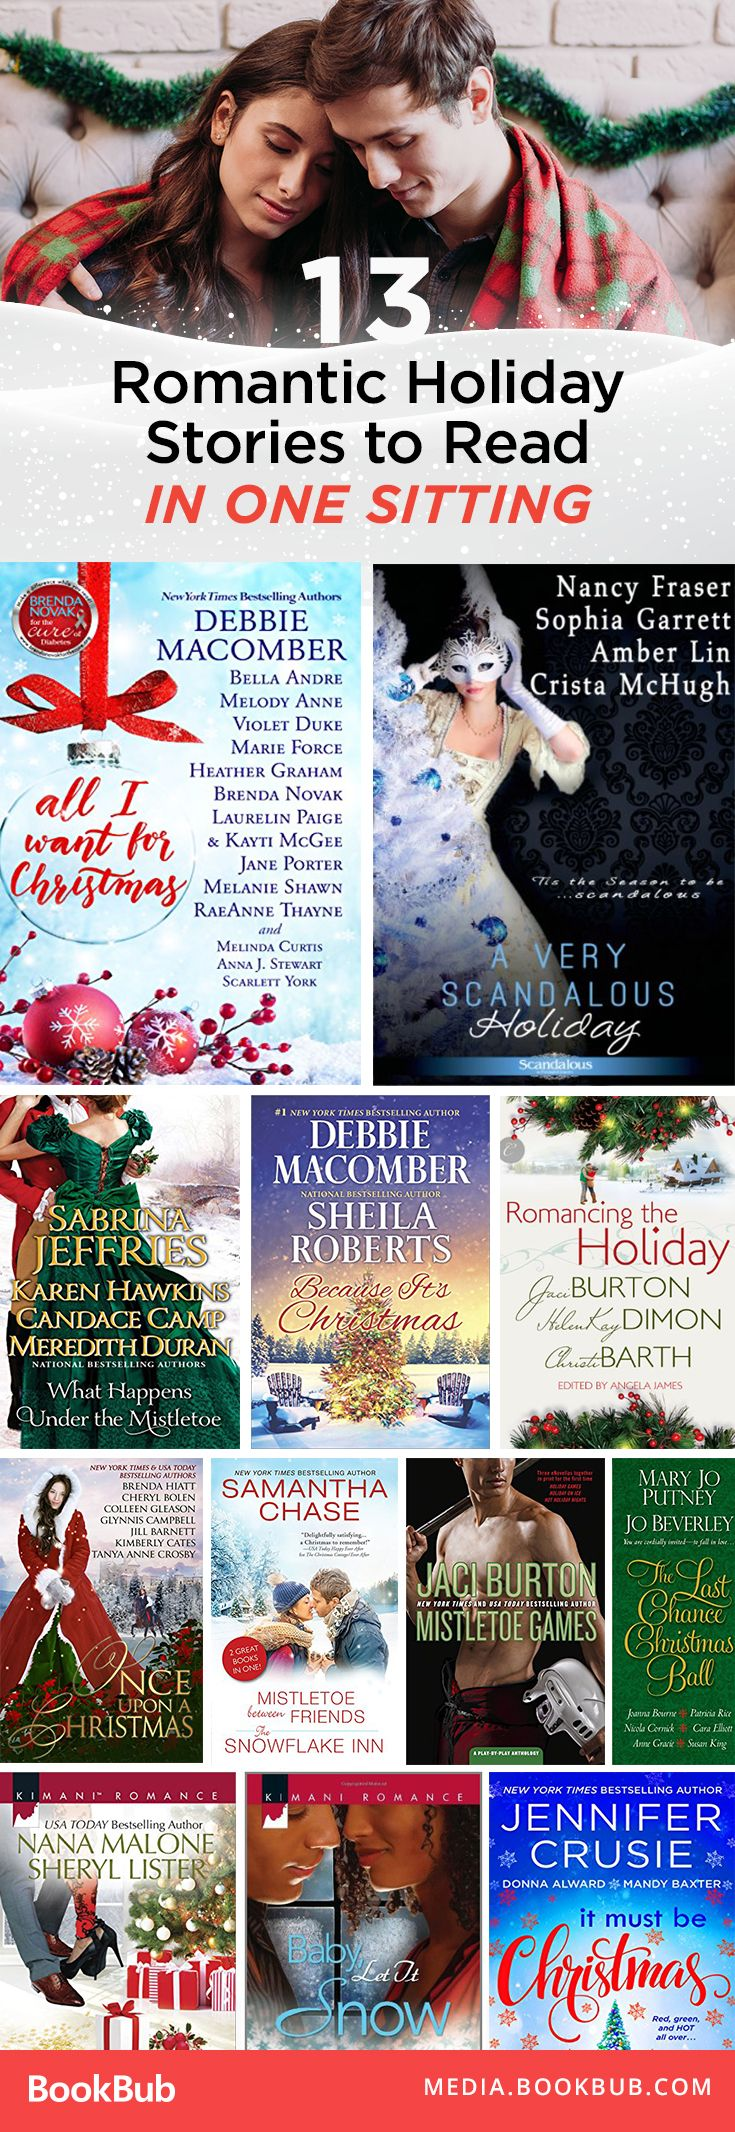 13 Christmas Romances You Can Read In One Sitting